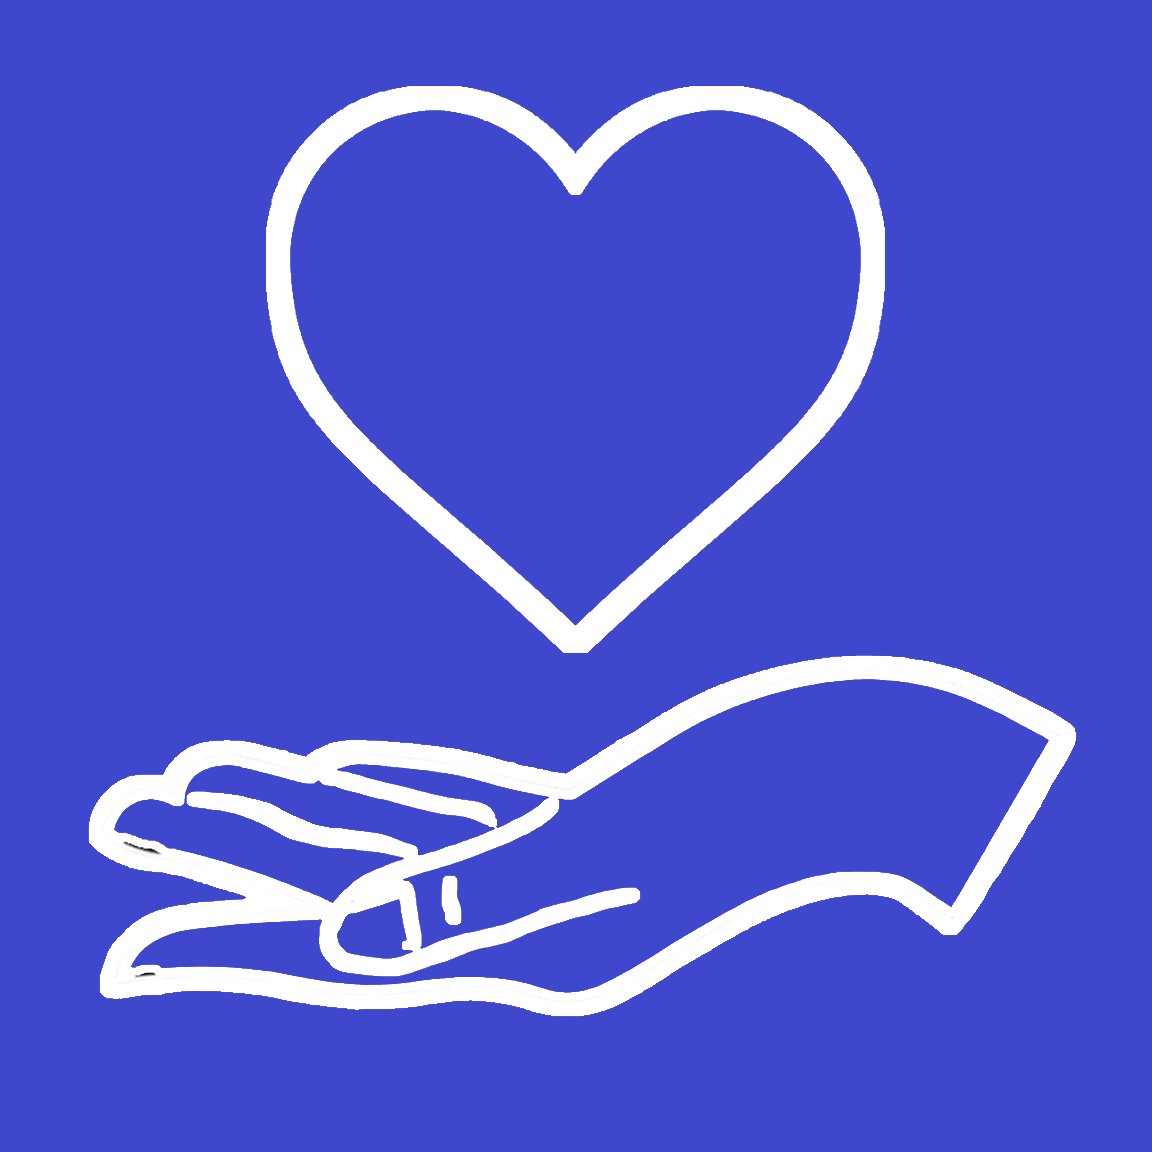 My MD Advisor Logo 7- Heart and Hand Royal Blue Background.png